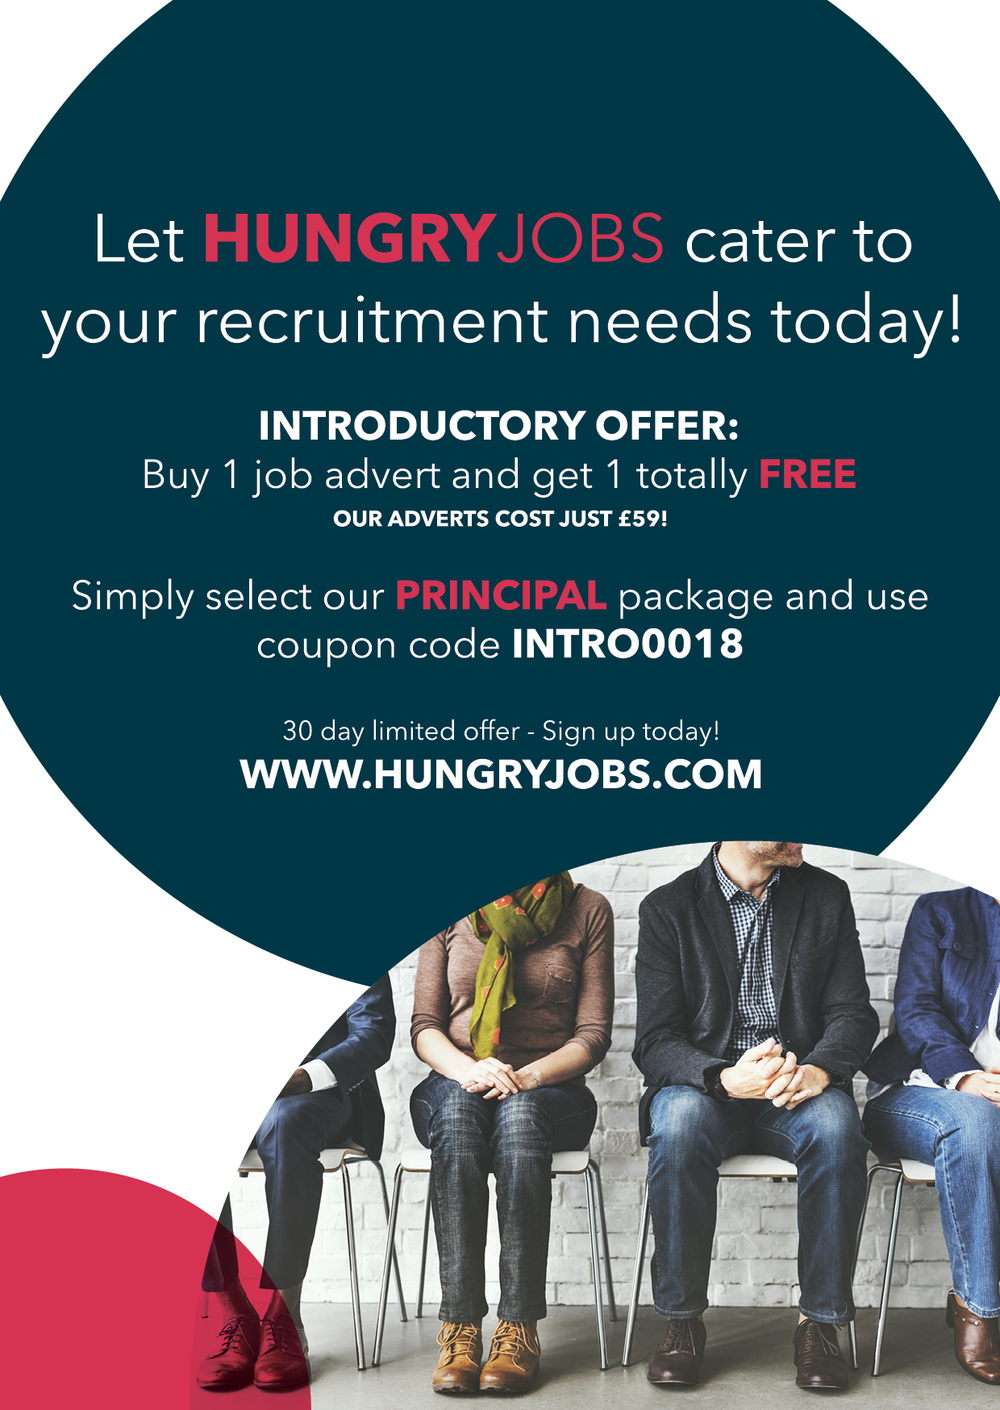 hungryjobs_final22.png